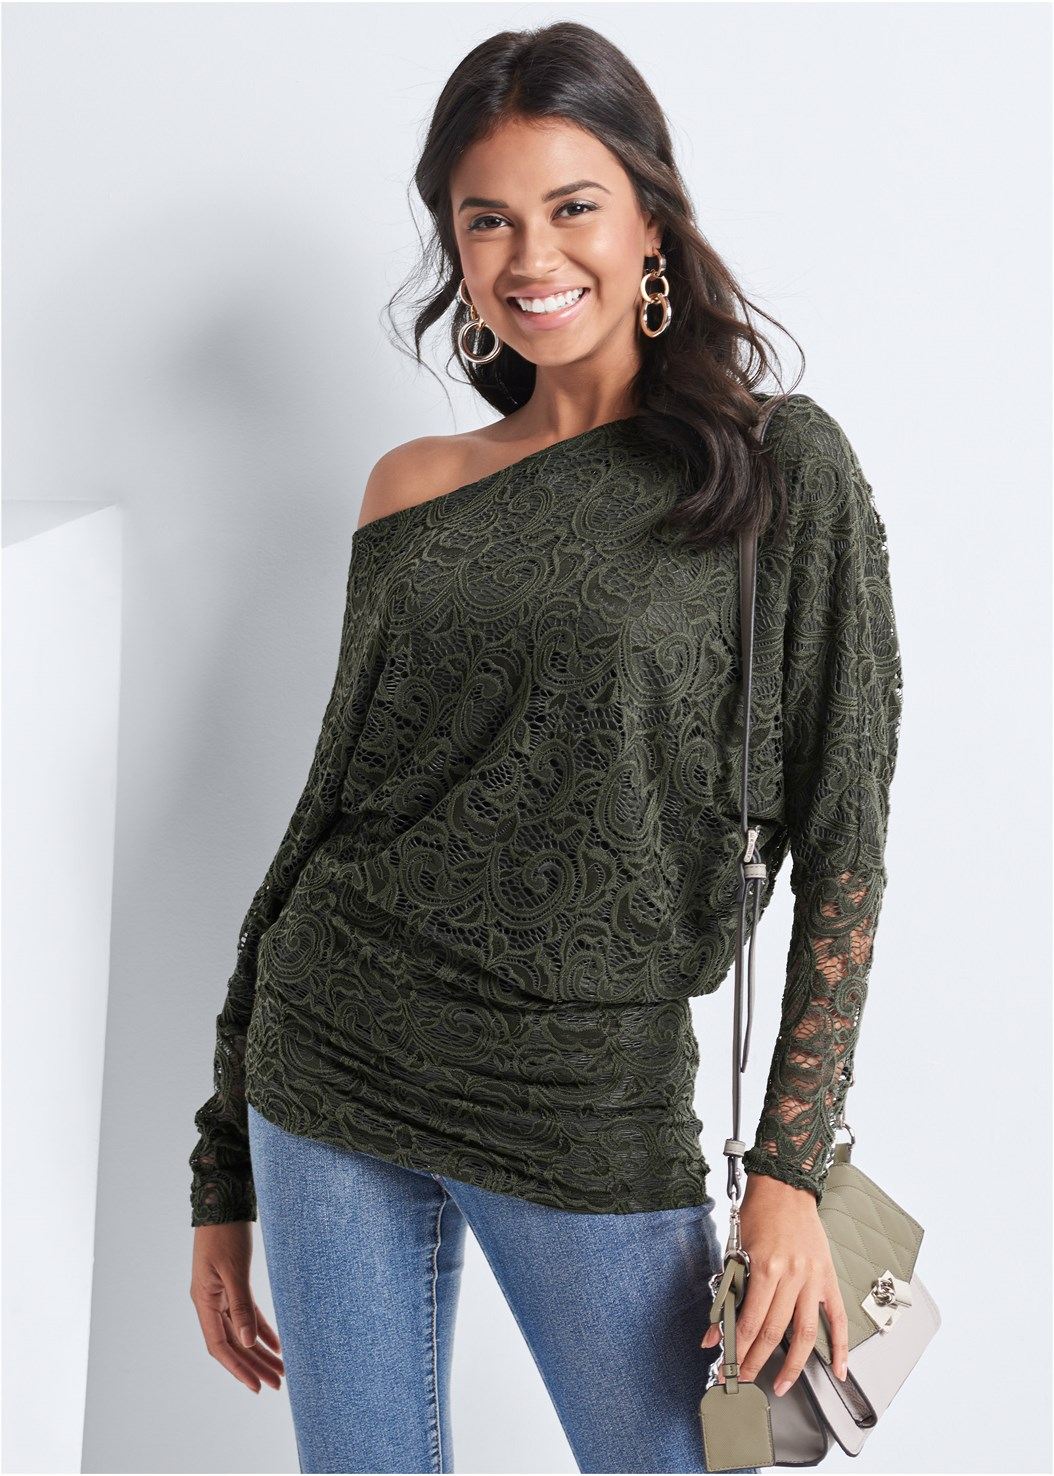 Lace Top,Mid Rise Color Skinny Jeans,Peep Toe Booties,Mix Metal Link Earrings